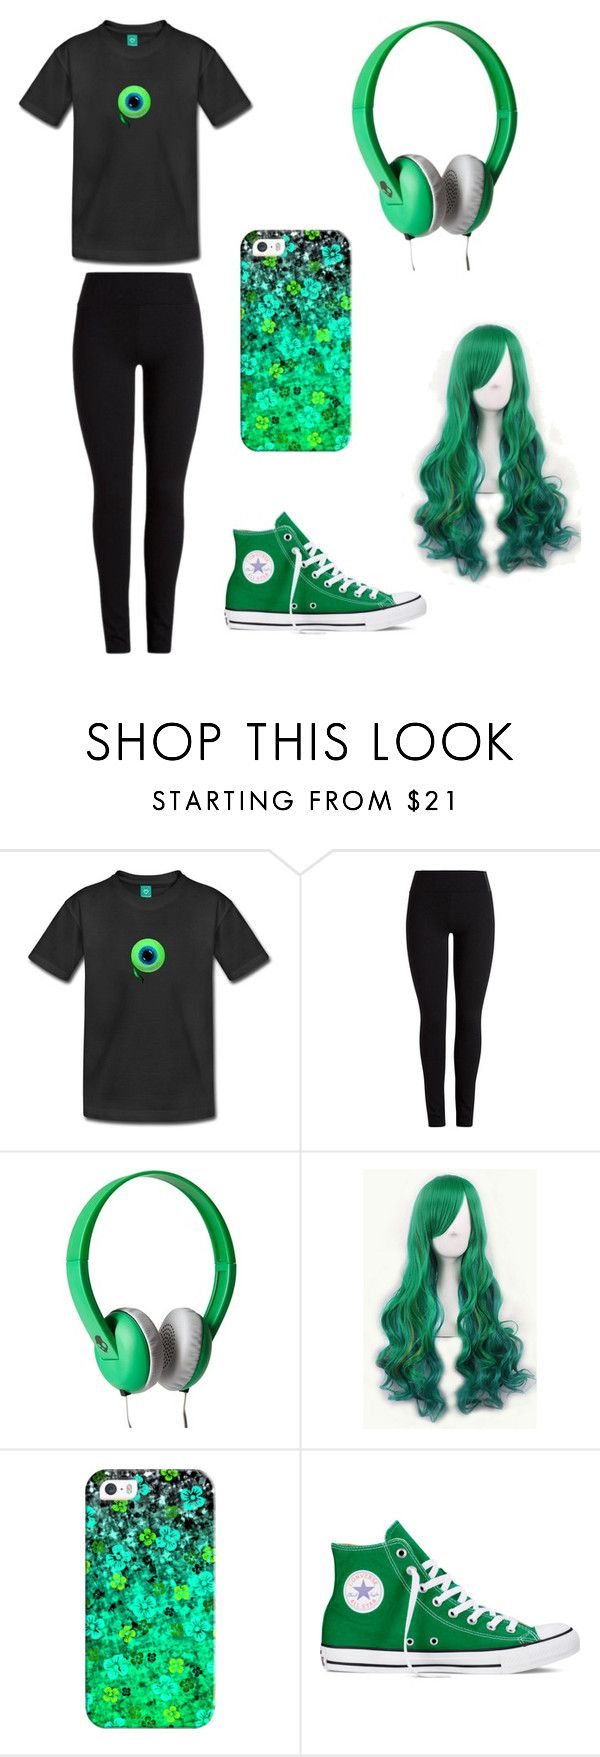 """""""Jacksepticeye inspired outfit """" by michellefaith271 ❤ liked on Polyvore featuring Skullcandy, Casetify and Converse"""